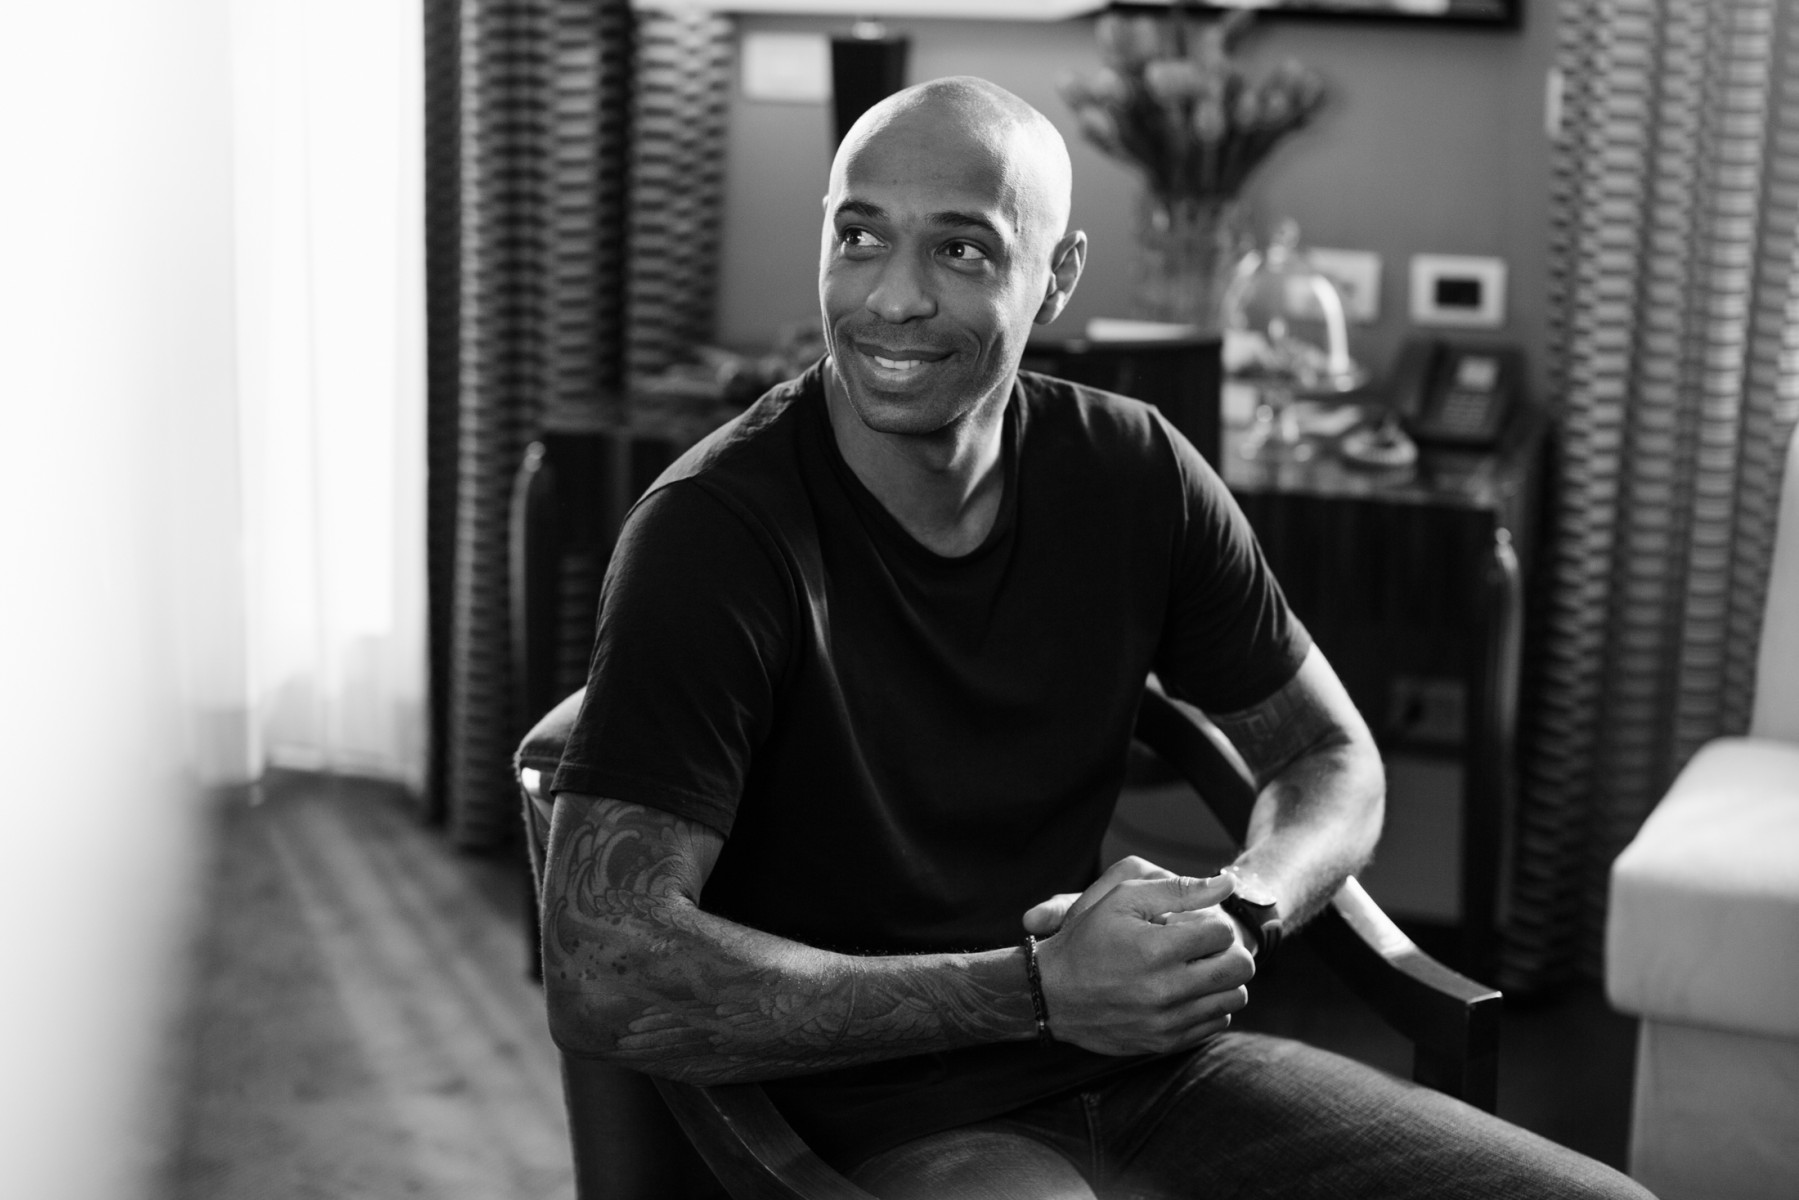 Thierry Henry at Grand Hotel Via Veneto